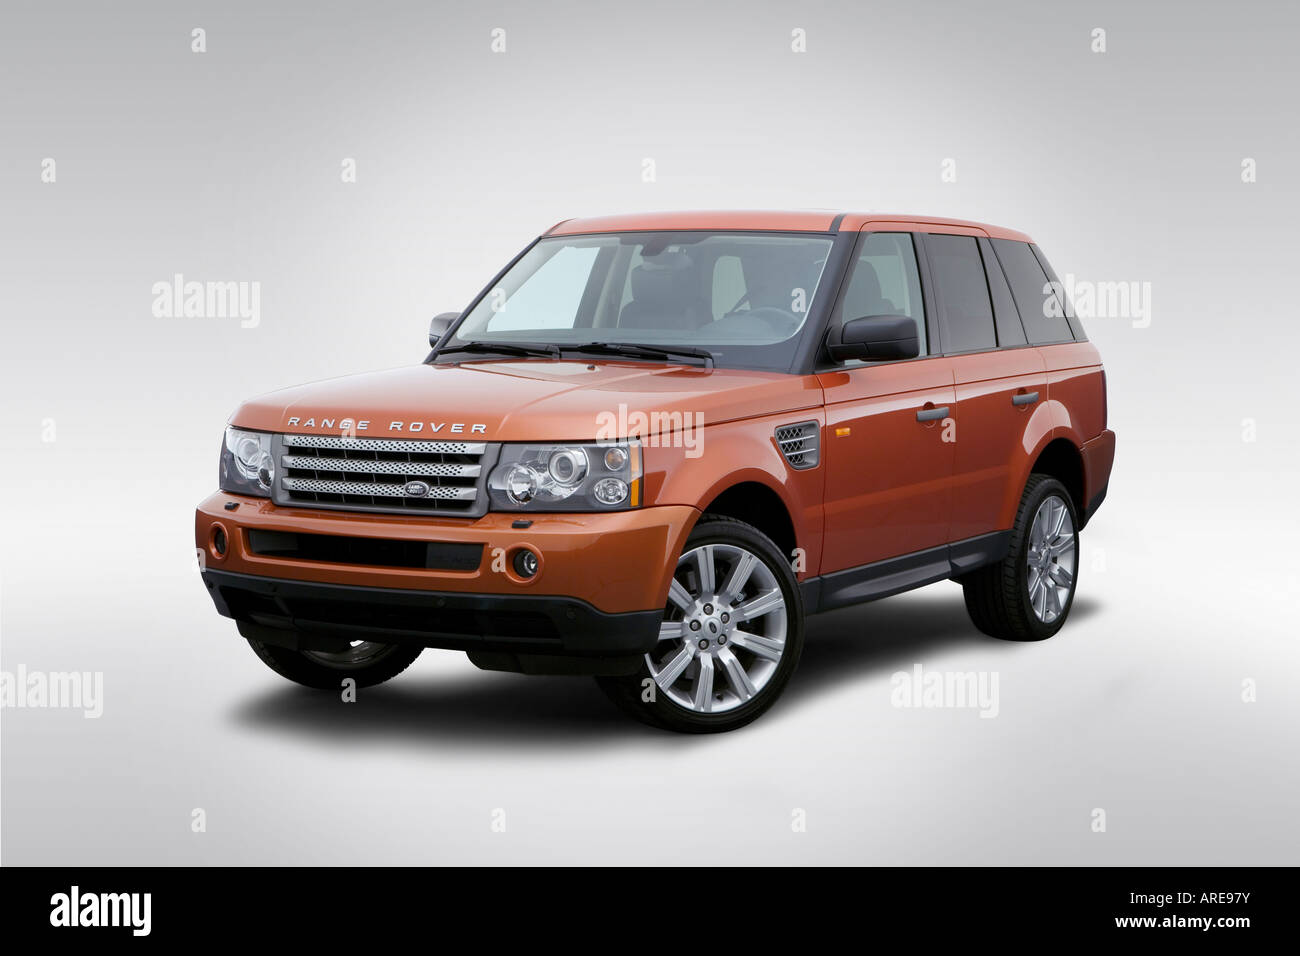 2006 land rover range rover sport supercharged in orange front stock photo royalty free image. Black Bedroom Furniture Sets. Home Design Ideas